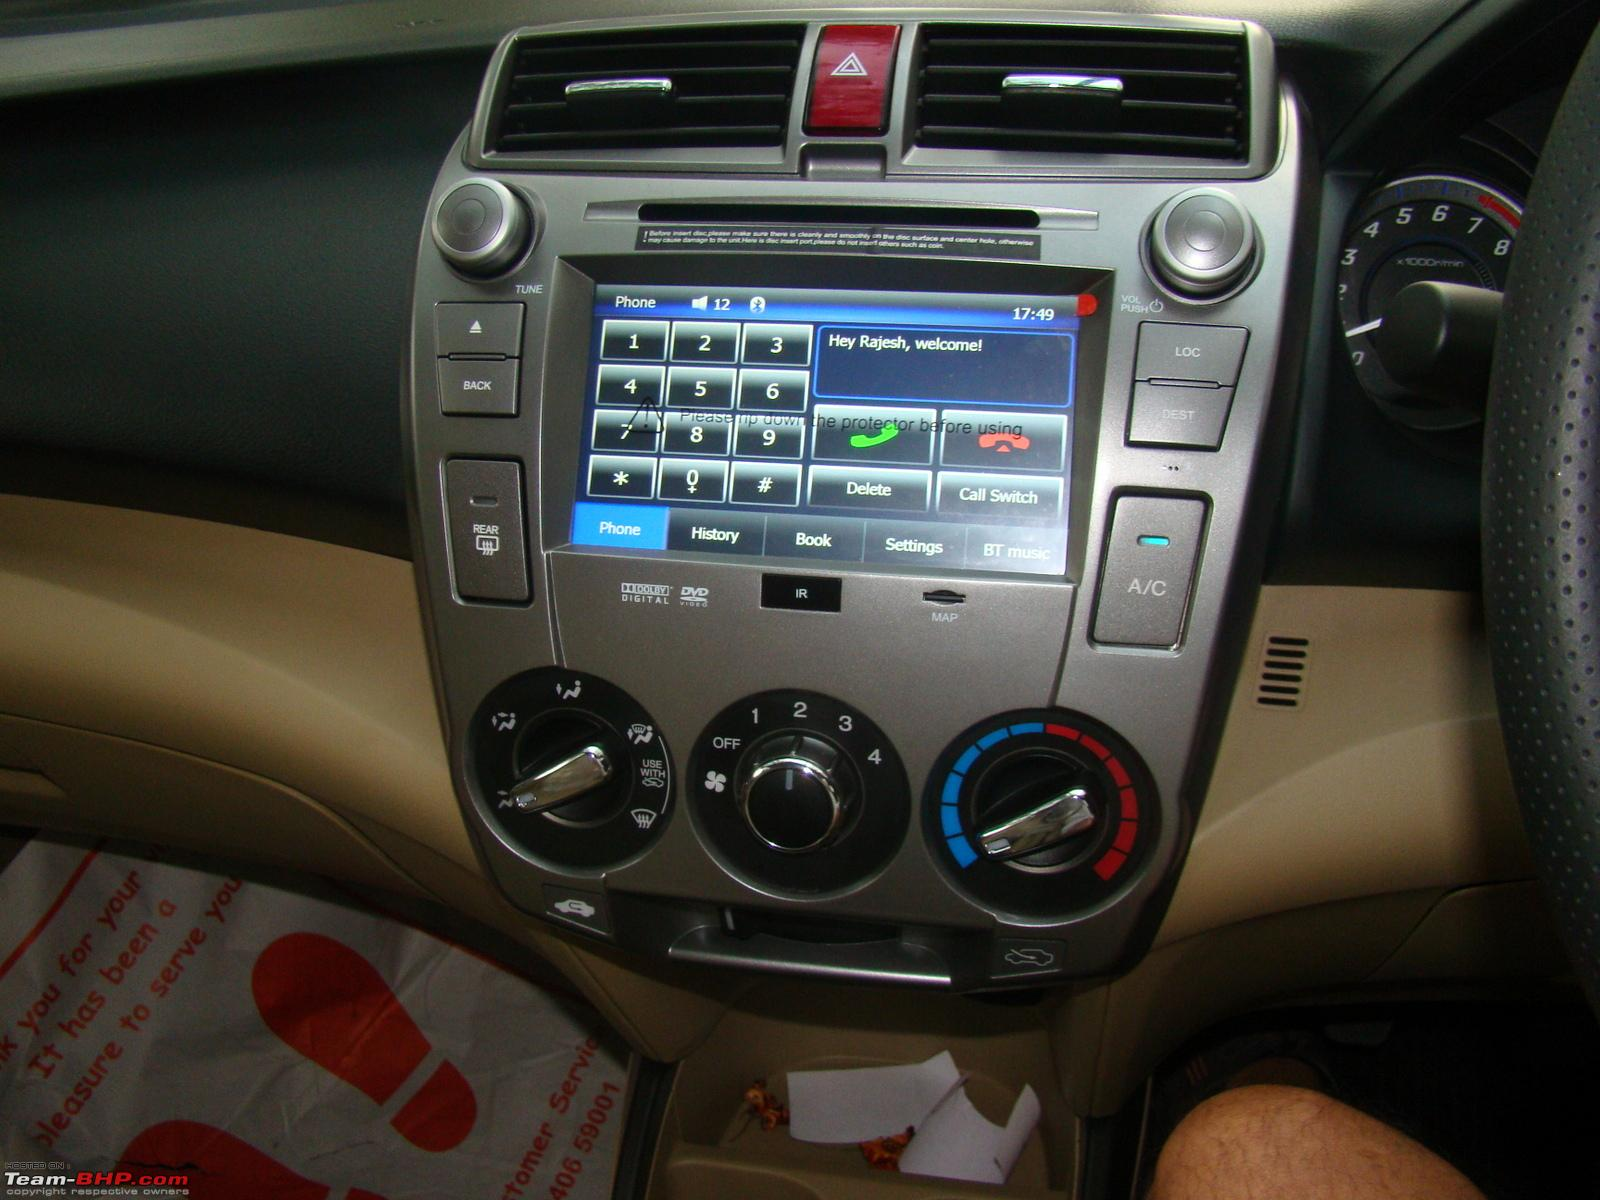 Honda city a close look at the factory fitted audio video navigation